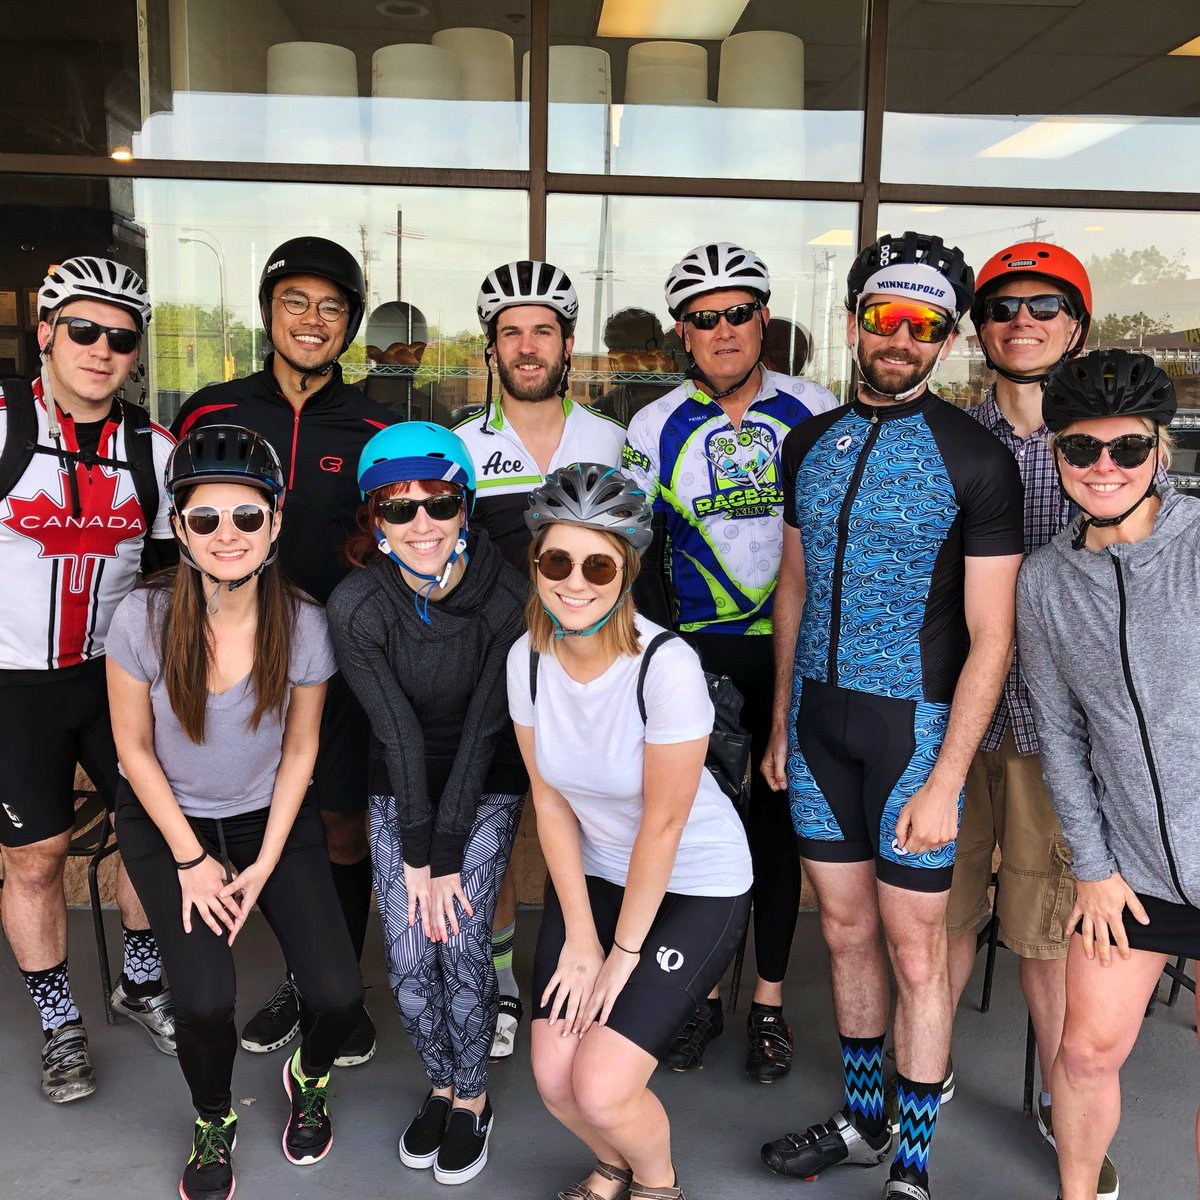 Kits zipped and helmets on. #BikeToWorkDay is the best way to start a Friday. Let's ride!